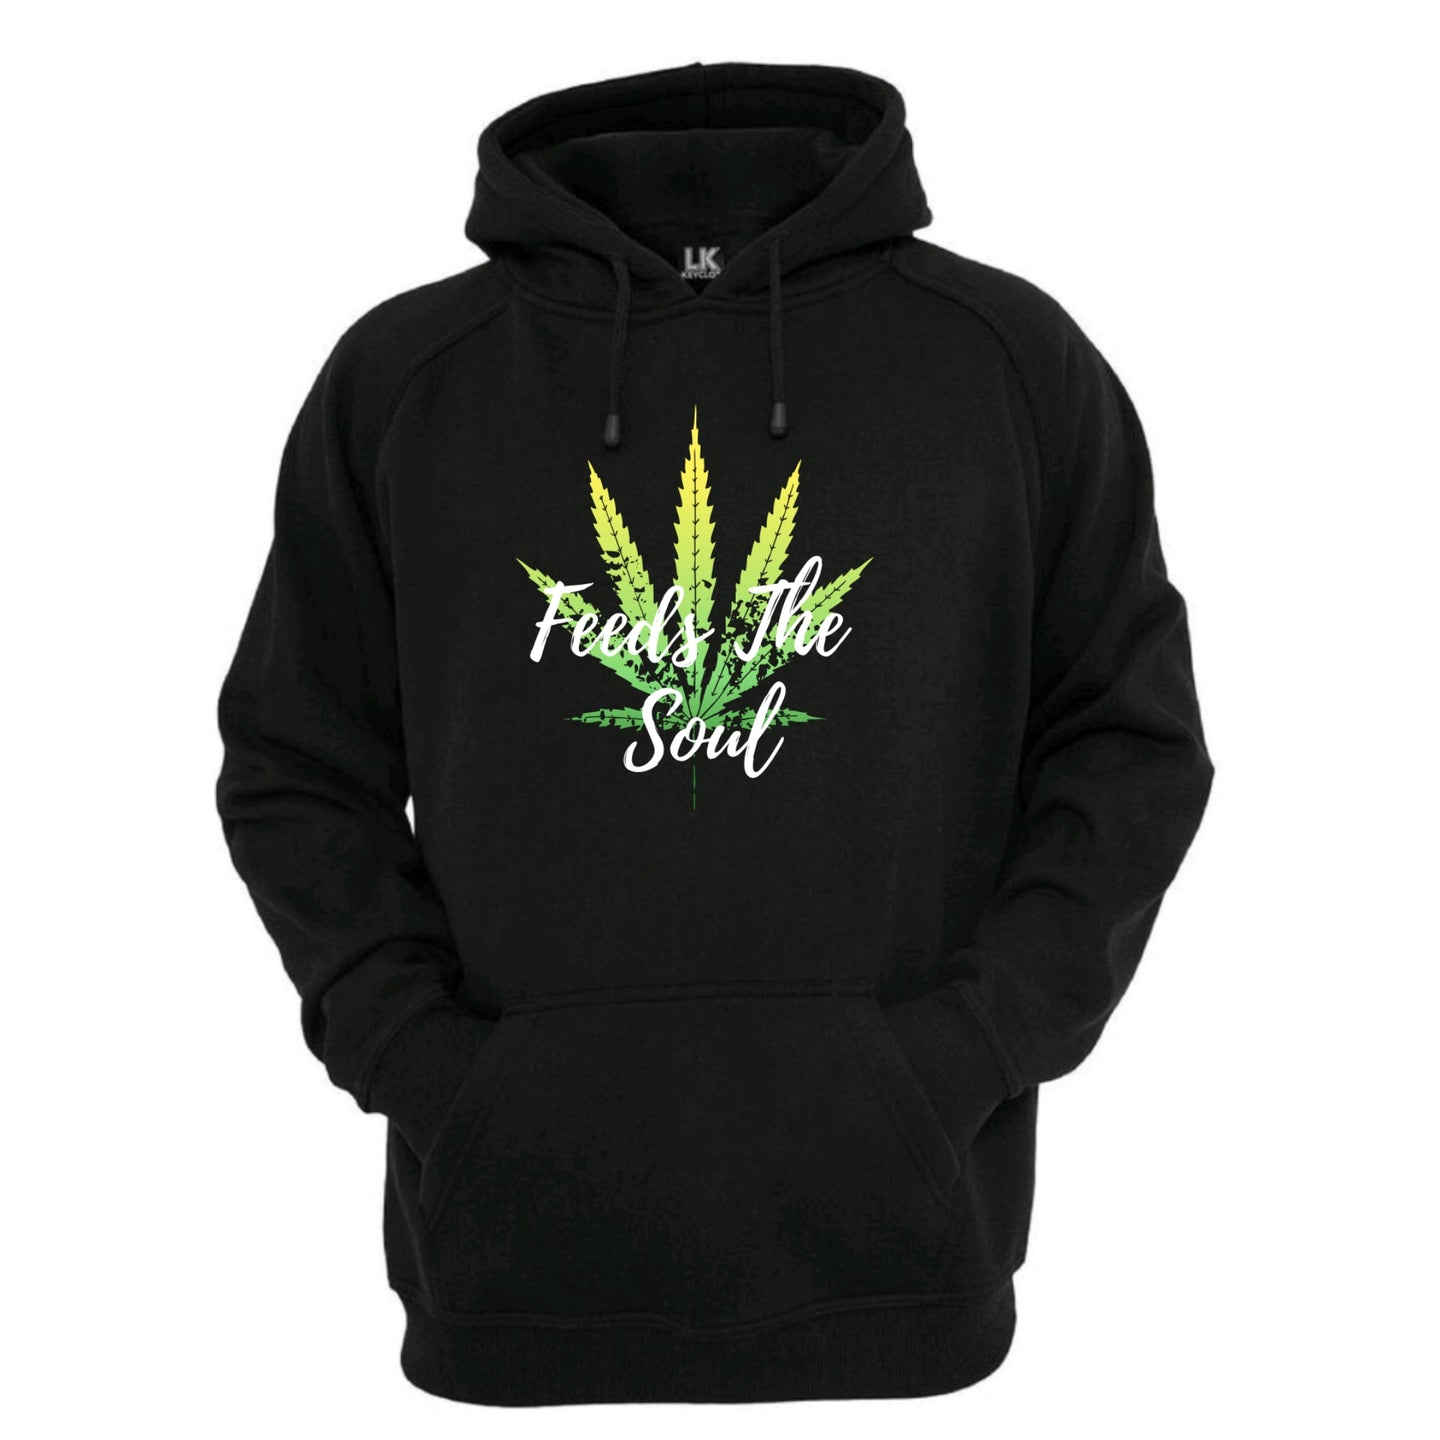 Herb Feeds The Soul Hoodie